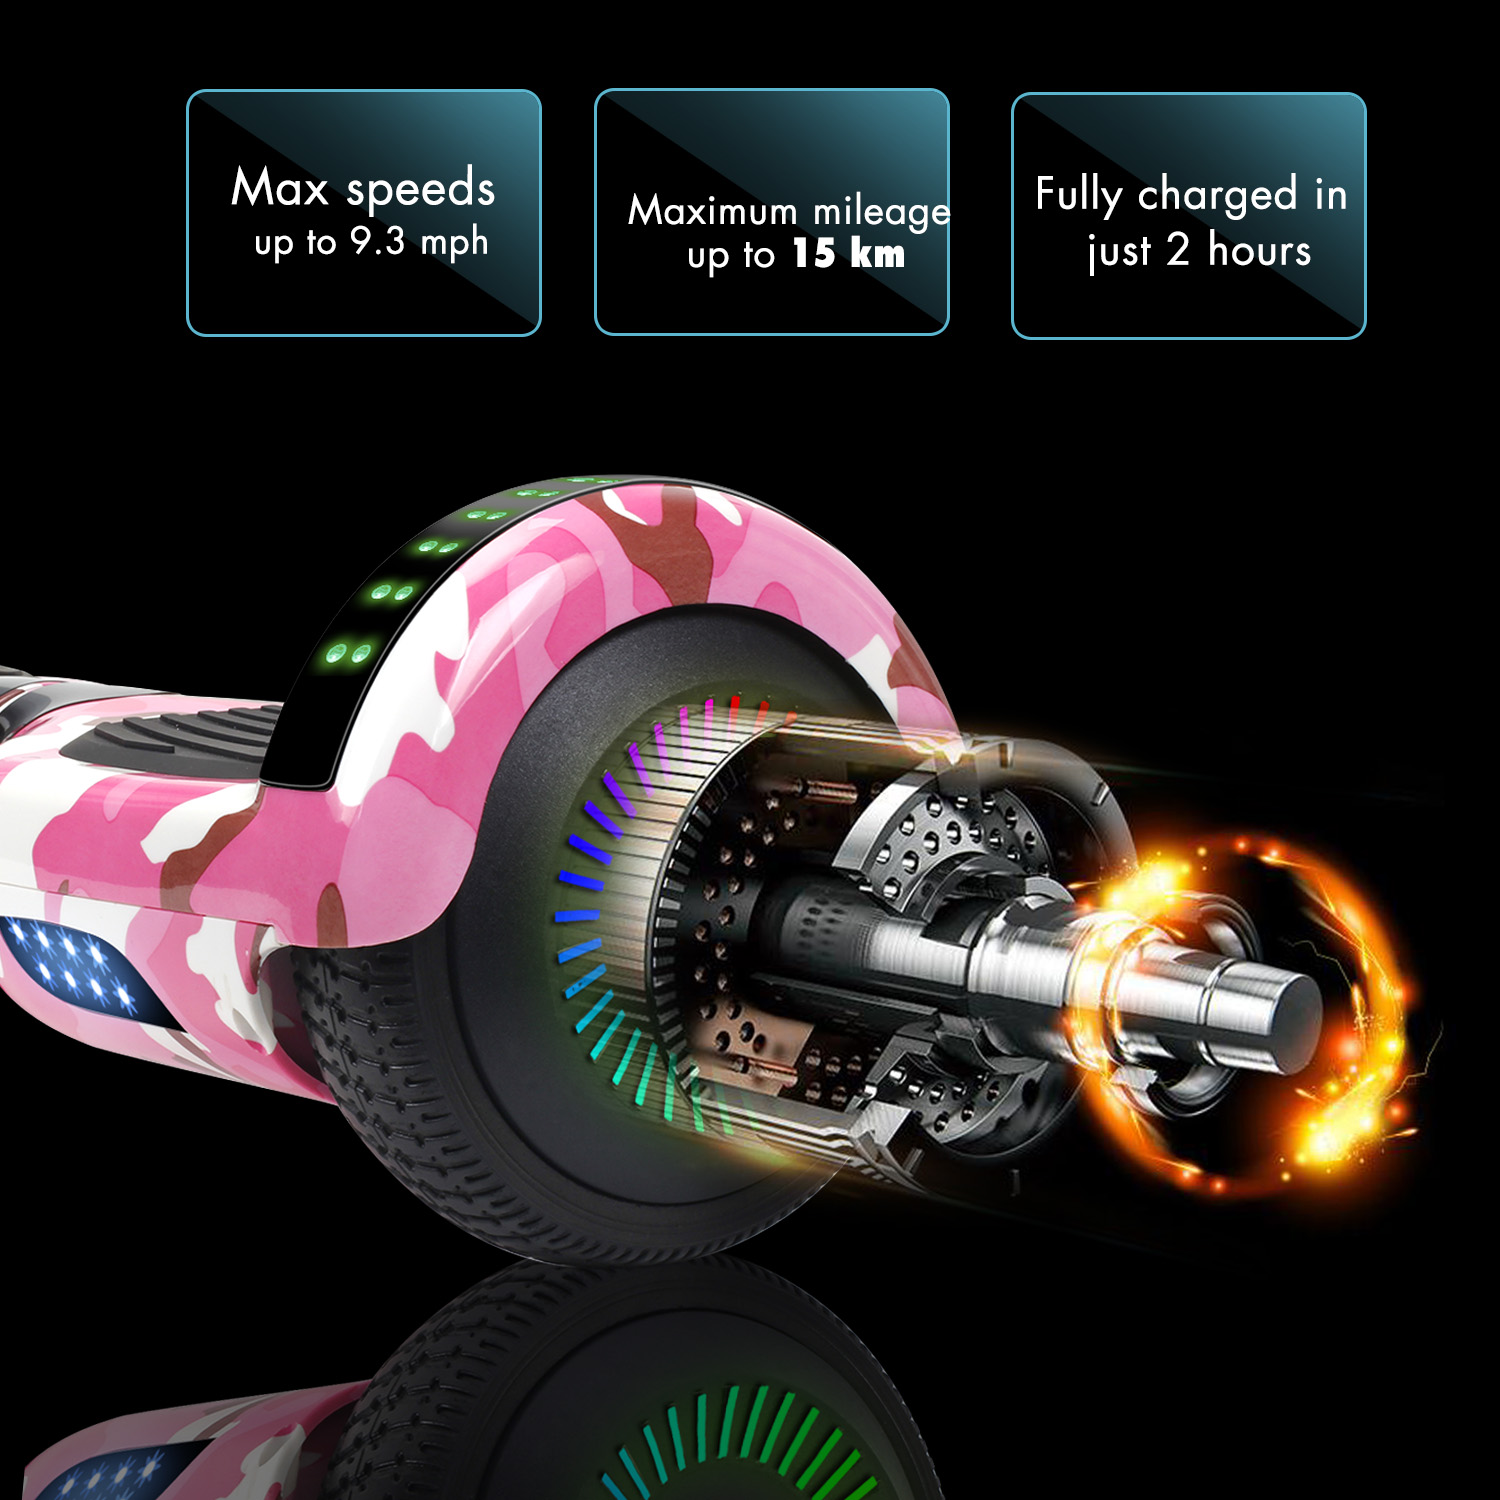 Details about  /6.5 Bluetooth Hoverboards Self-Balancing Scooter No Bag Camou